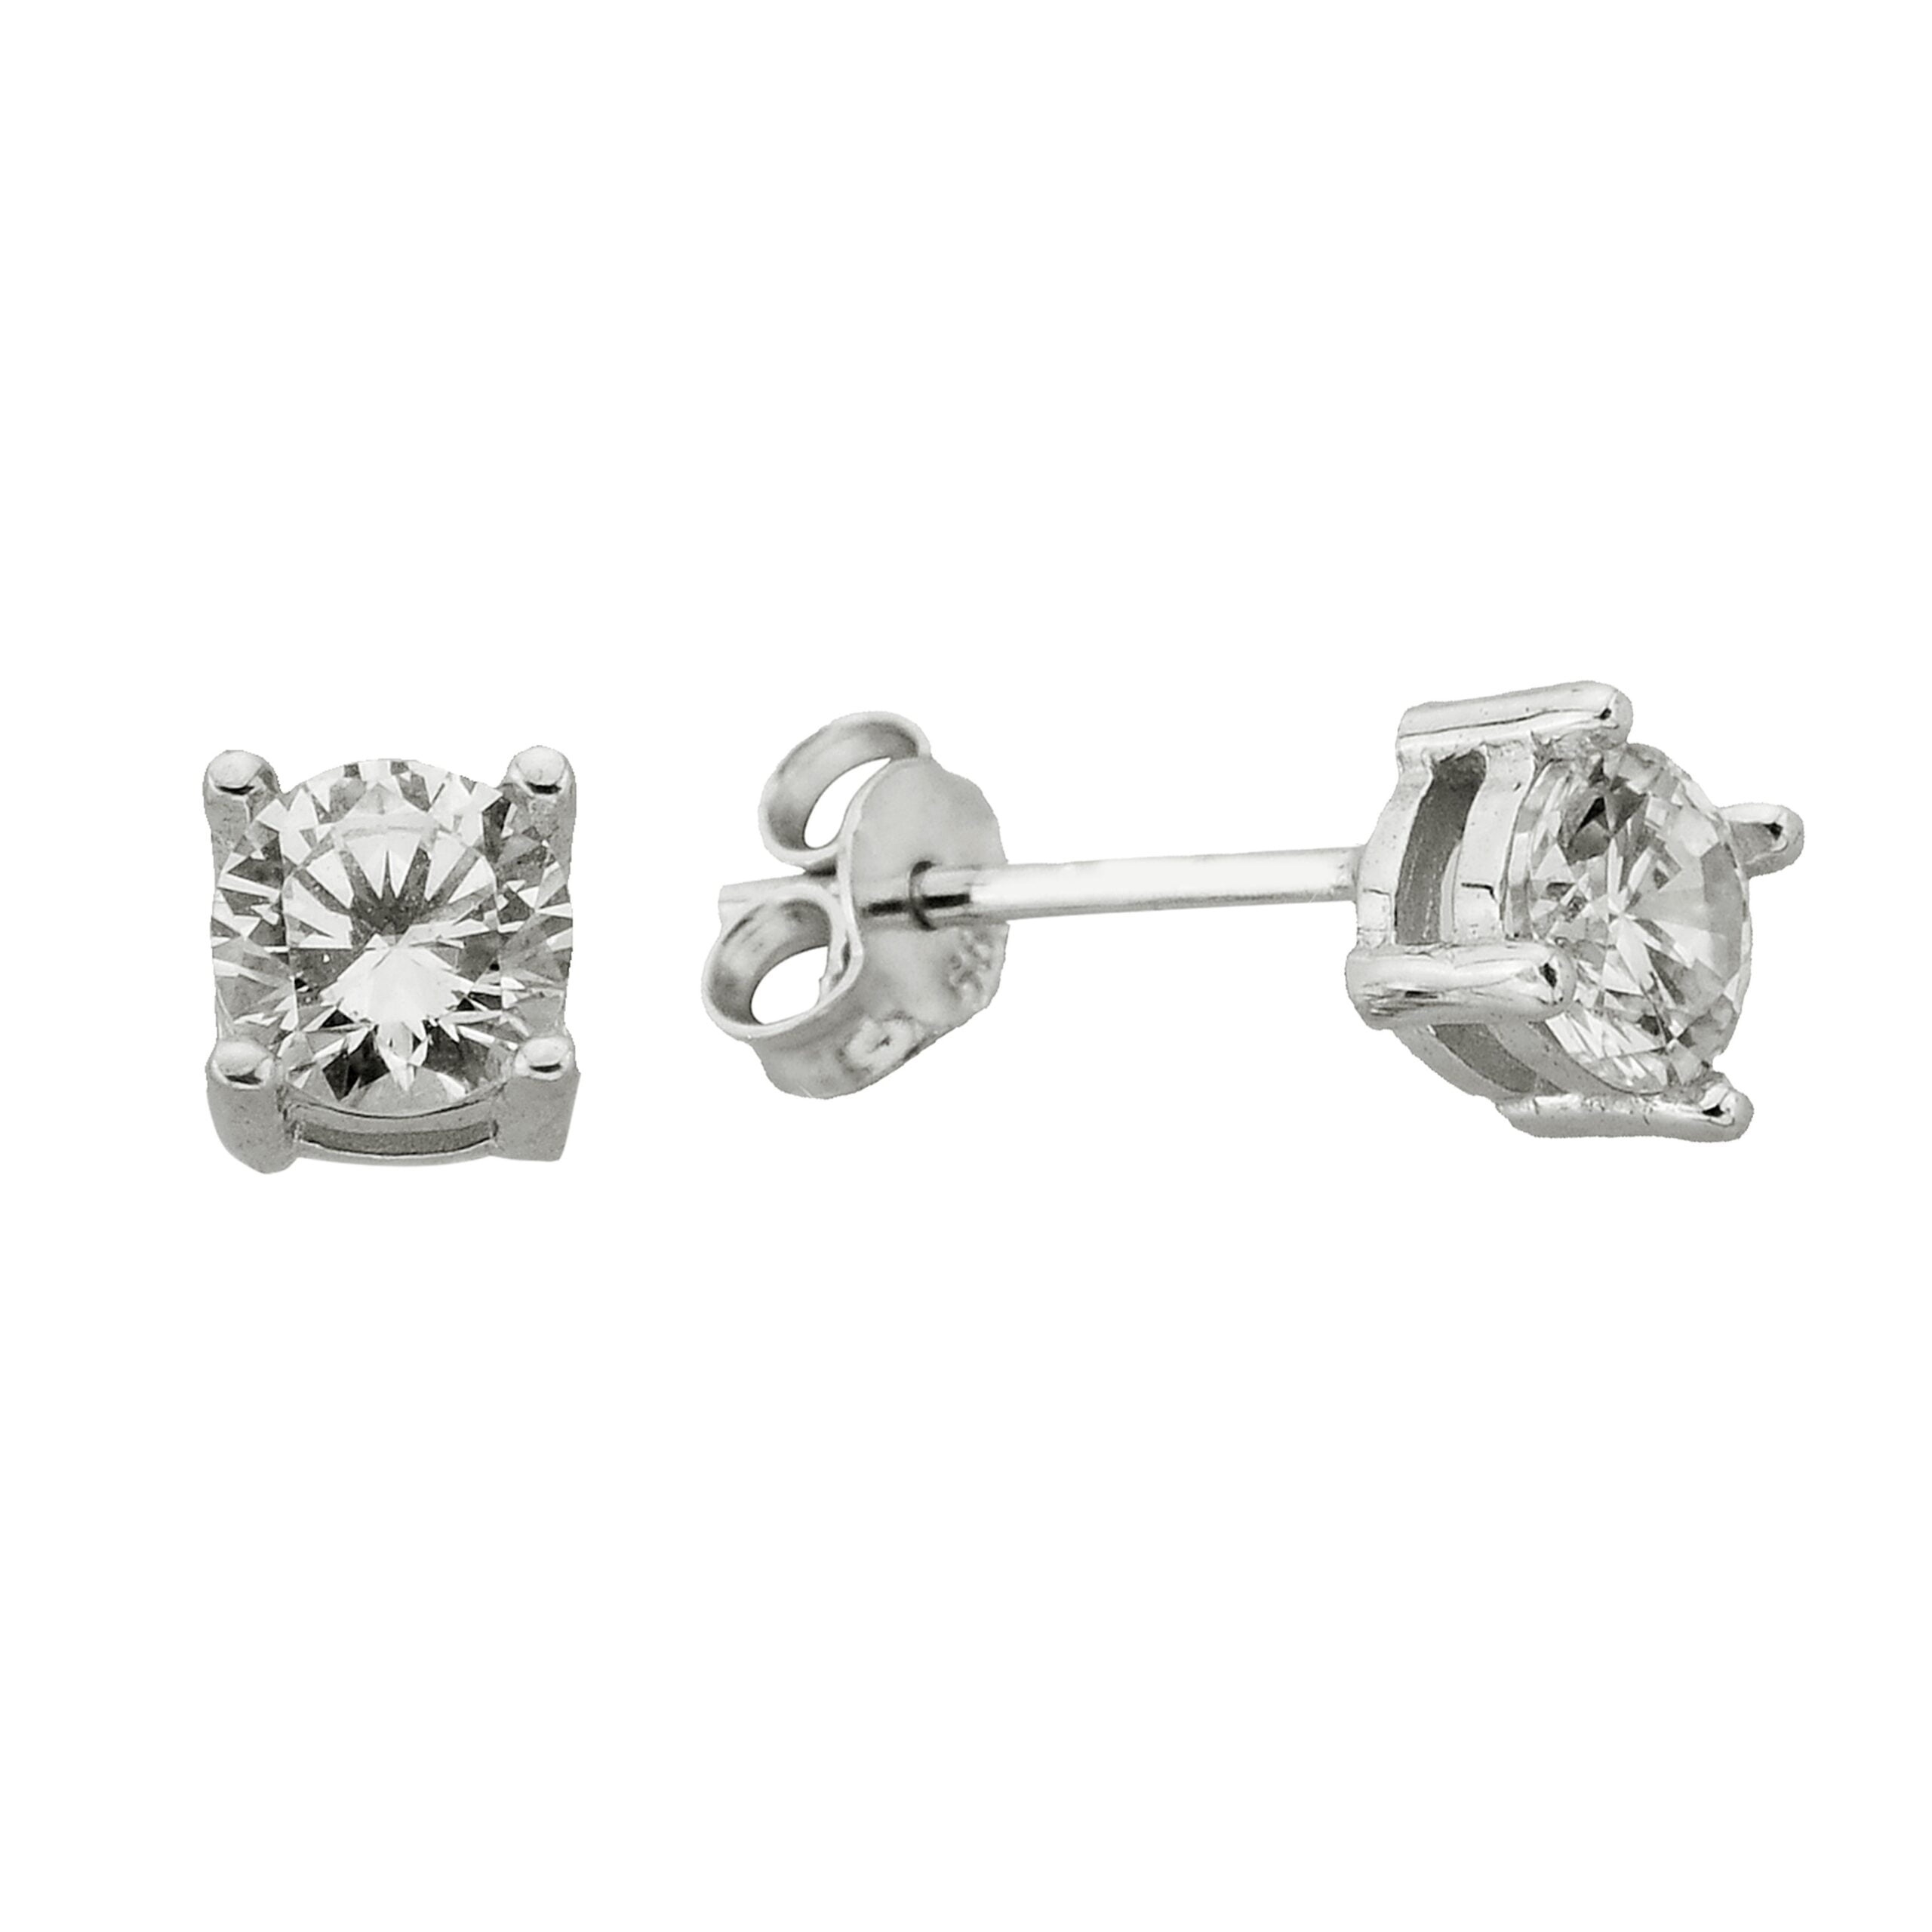 14K Real Solid White Gold Solitaire Stud Earrings for Women , CZ Solitaire Earrings mother's day birthday christmas gift handmade jewelry diamond cut